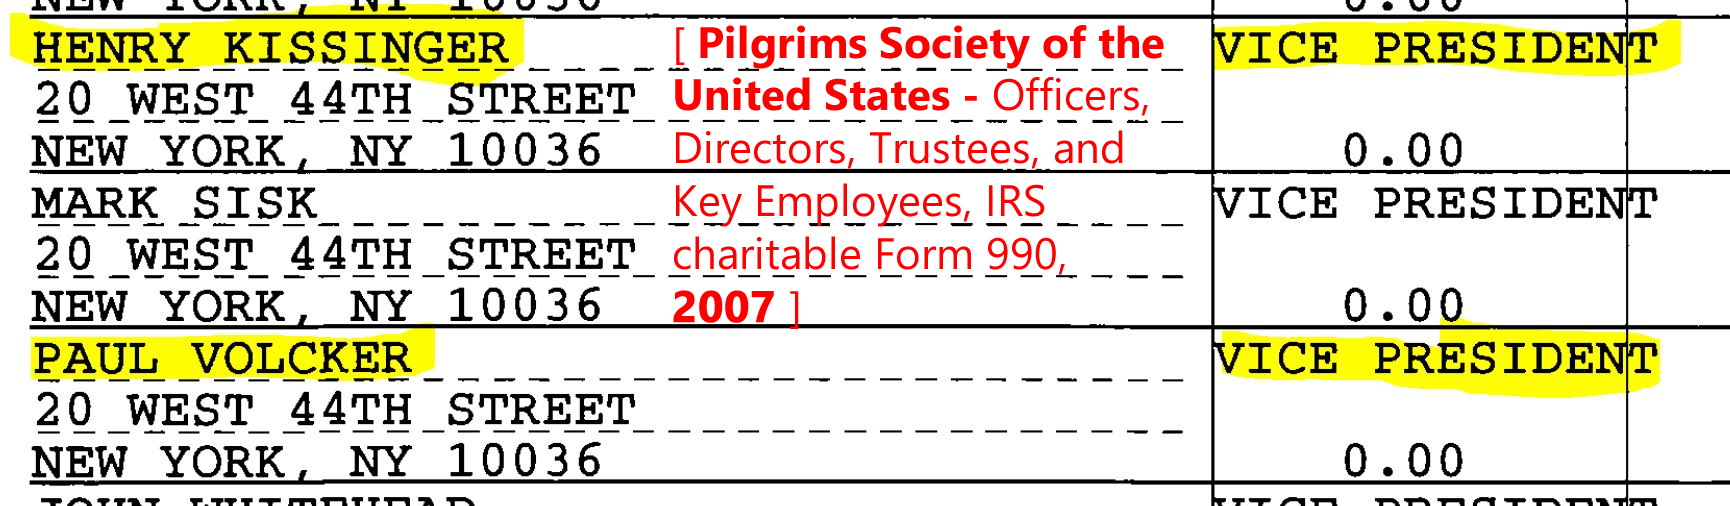 Kissinger, Volcker Pilgrims Society Officers 2007